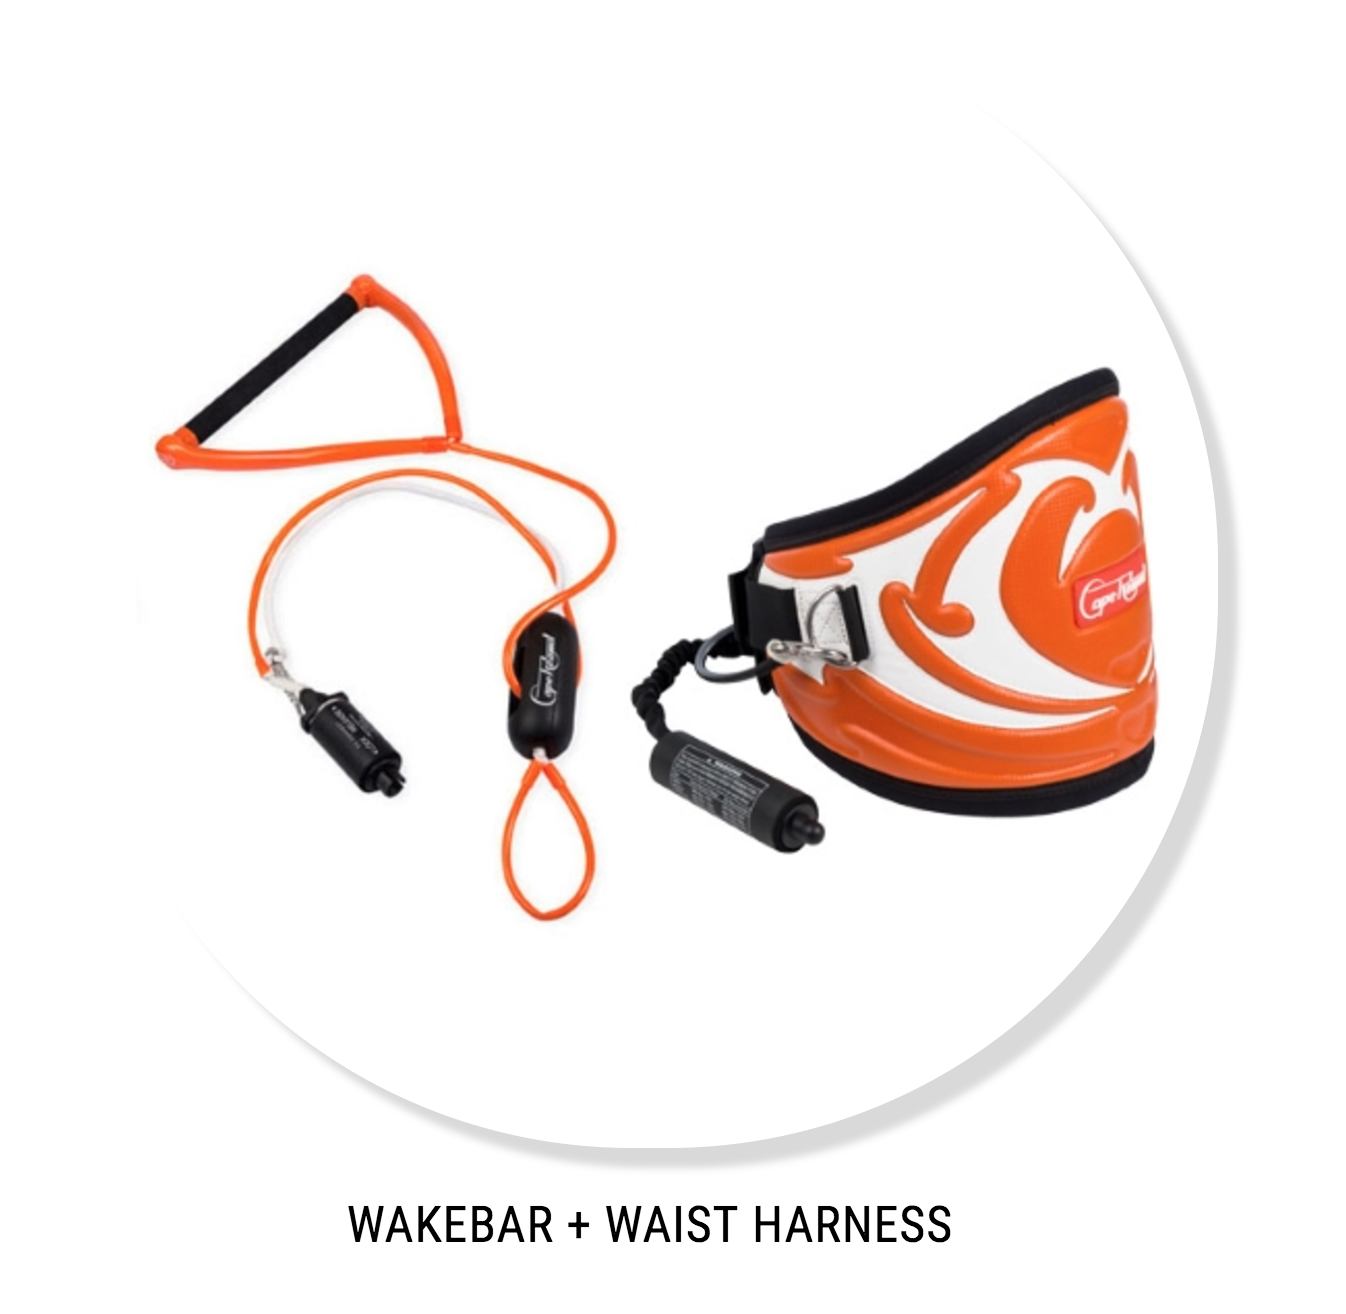 CR WAKE HARNESS SET